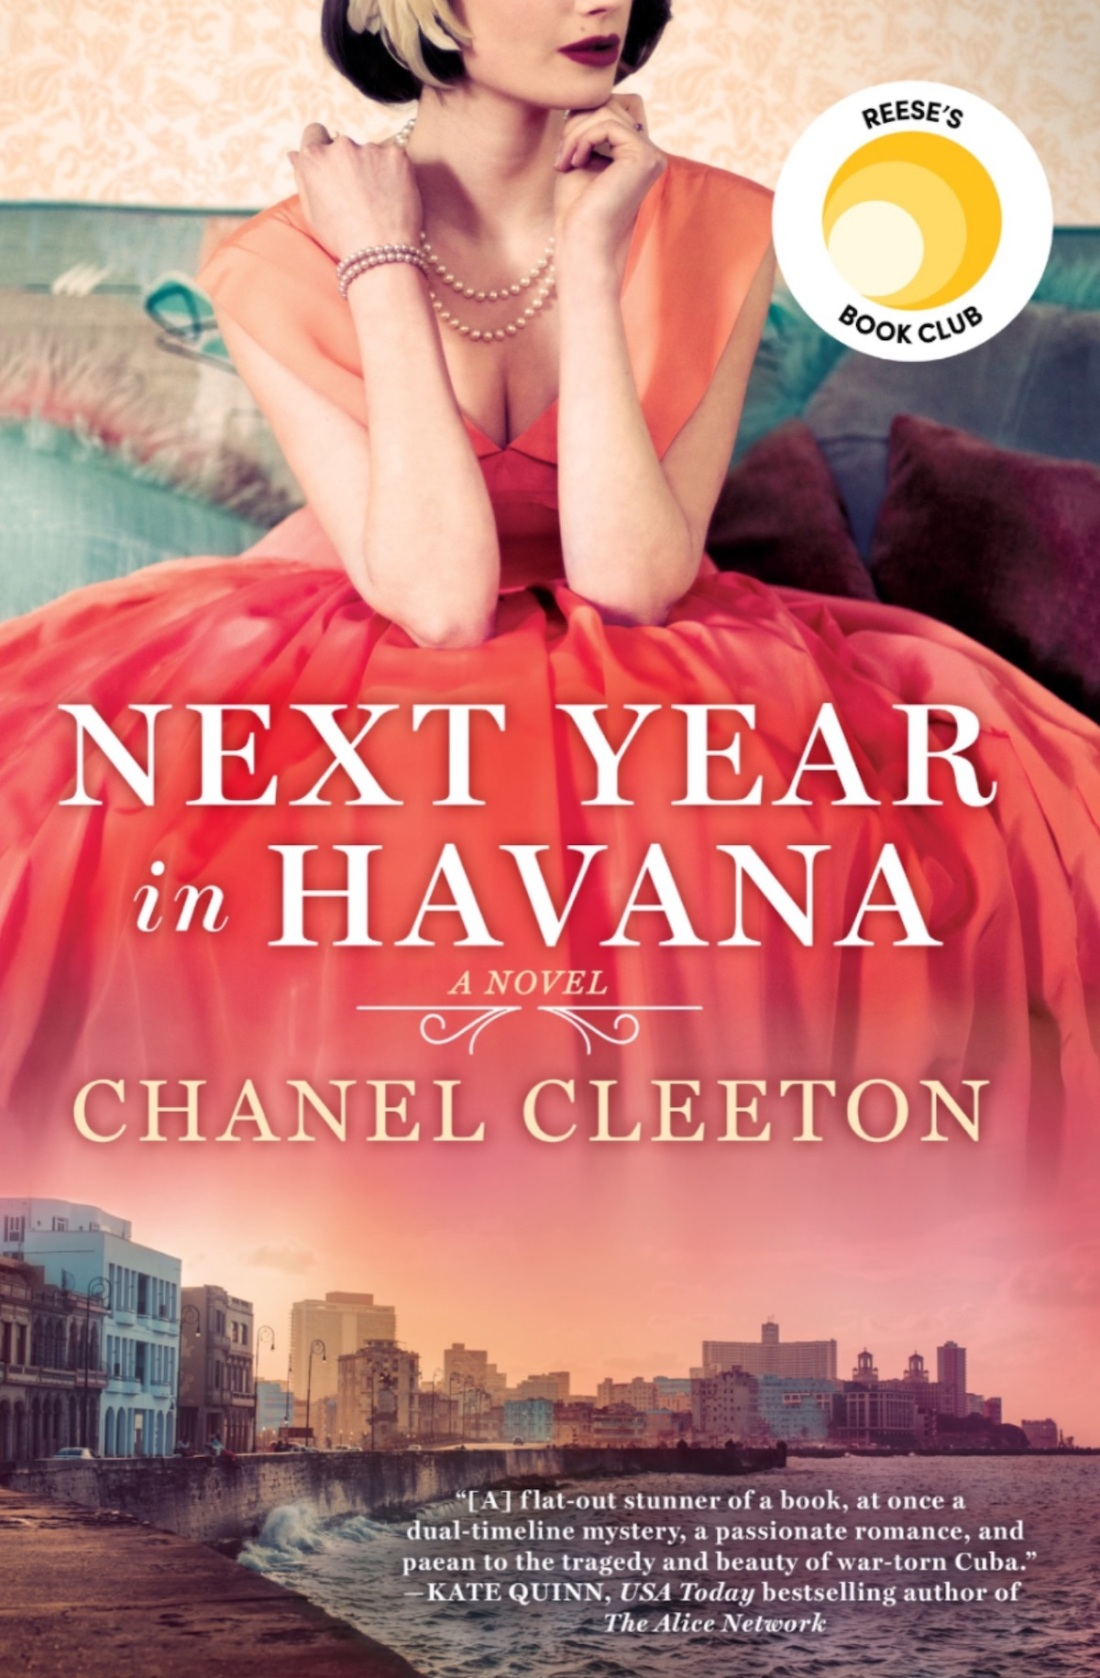 book cover of Next Year in Havana by Chanel Cleeton